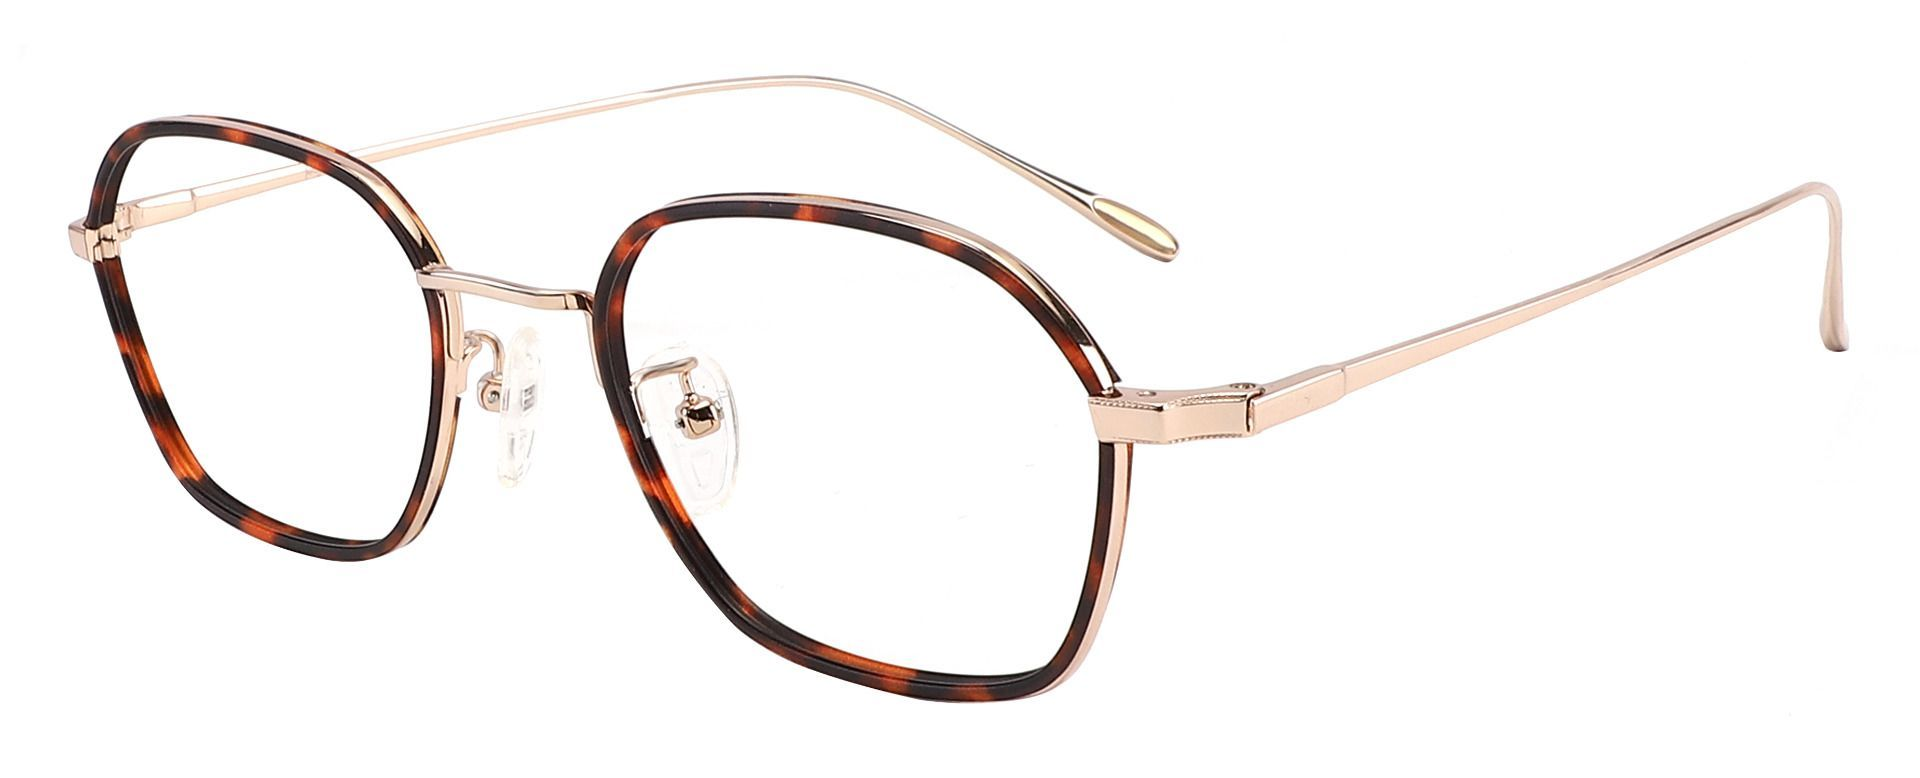 Columbia Geometric Prescription Glasses - Tortoise